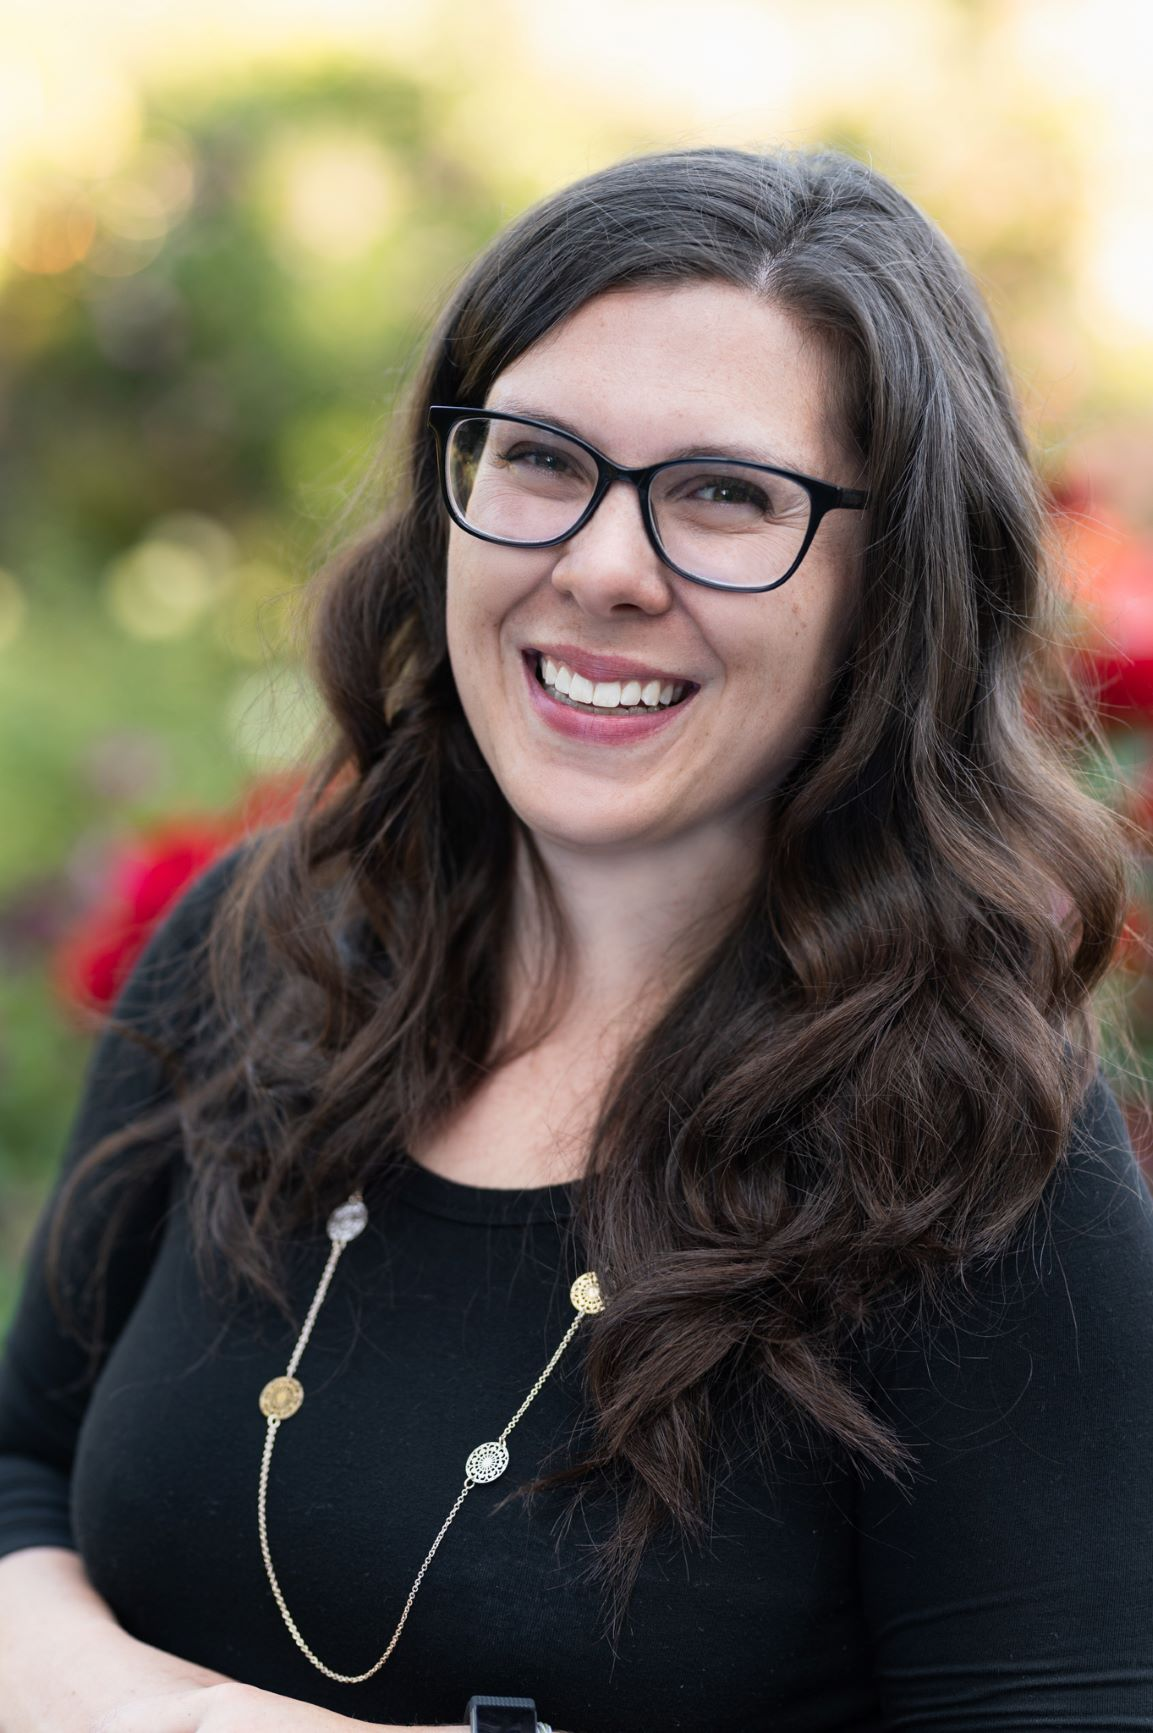 Sarah Adams, LMFT, Marriage & Family Therapist in Portland, OR